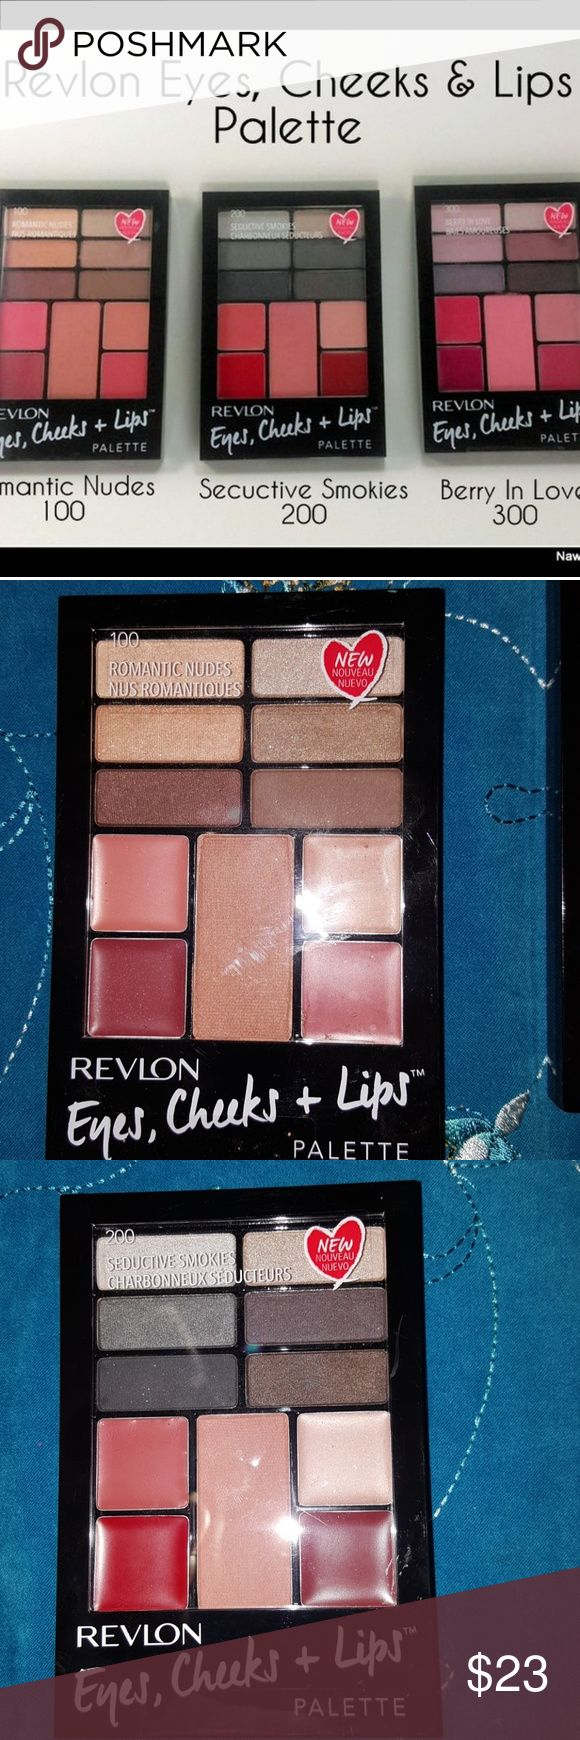 Revlon eyes lips and cheek palettes all 3 Revlon's Eyes, Cheeks + Lips Palette is an all-in-one palette that delivers an on-trend full face look with universally flattering shades. Perfect for on-the-go use, this kit includes Revlon's best-selling eye shadow, lipstick and blush. Each palette includes 6 eye shadows  1 blush  2 lipsticks Super Lustrous formula poured 2 lip glosses Mini applicators included (dual ended eye shadow applicator, lip brush blush brush New sealed never opened…